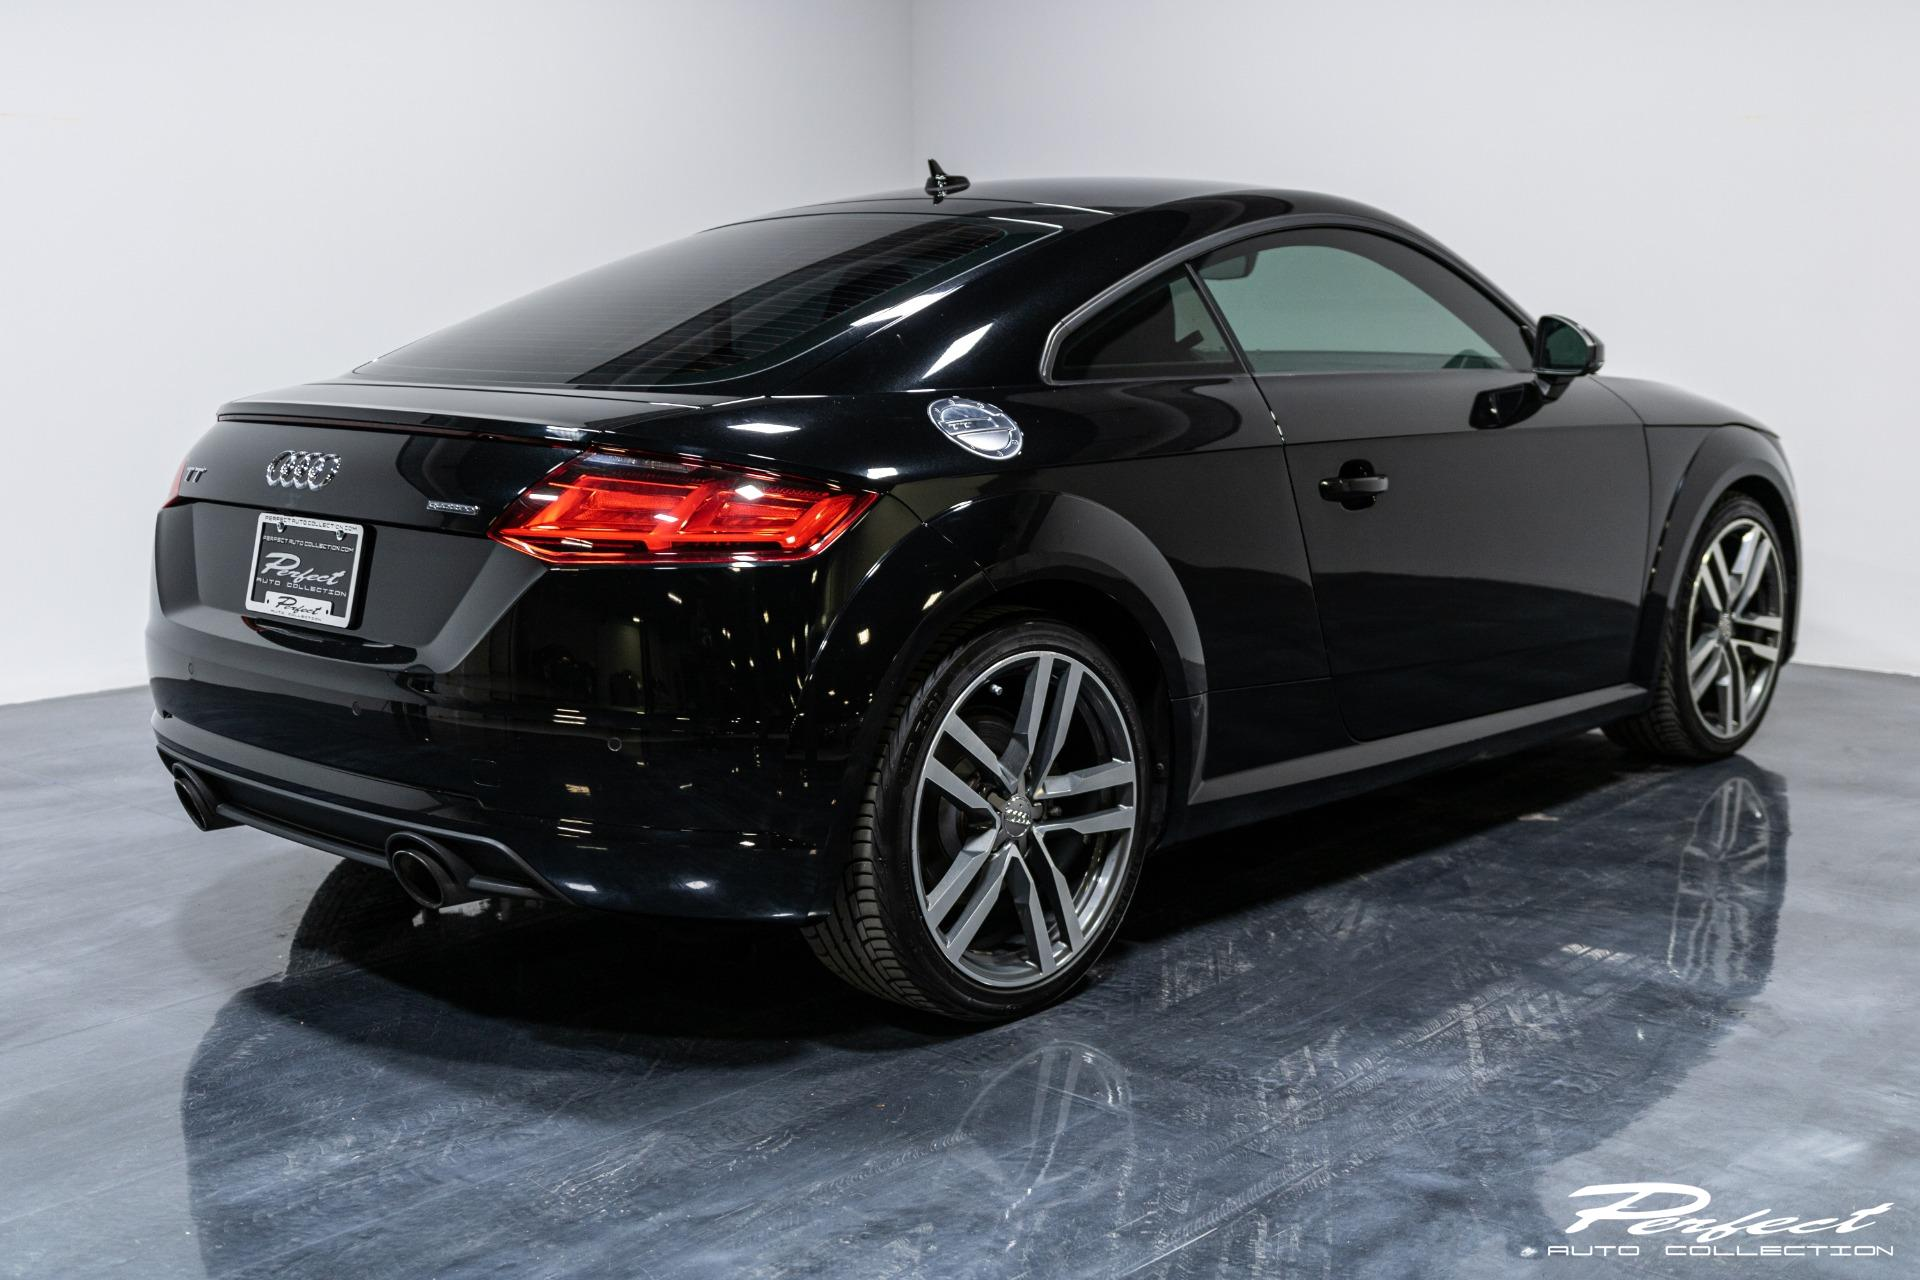 Used 2016 Audi TT 2.0T quattro for sale Sold at Perfect Auto Collection in Akron OH 44310 4